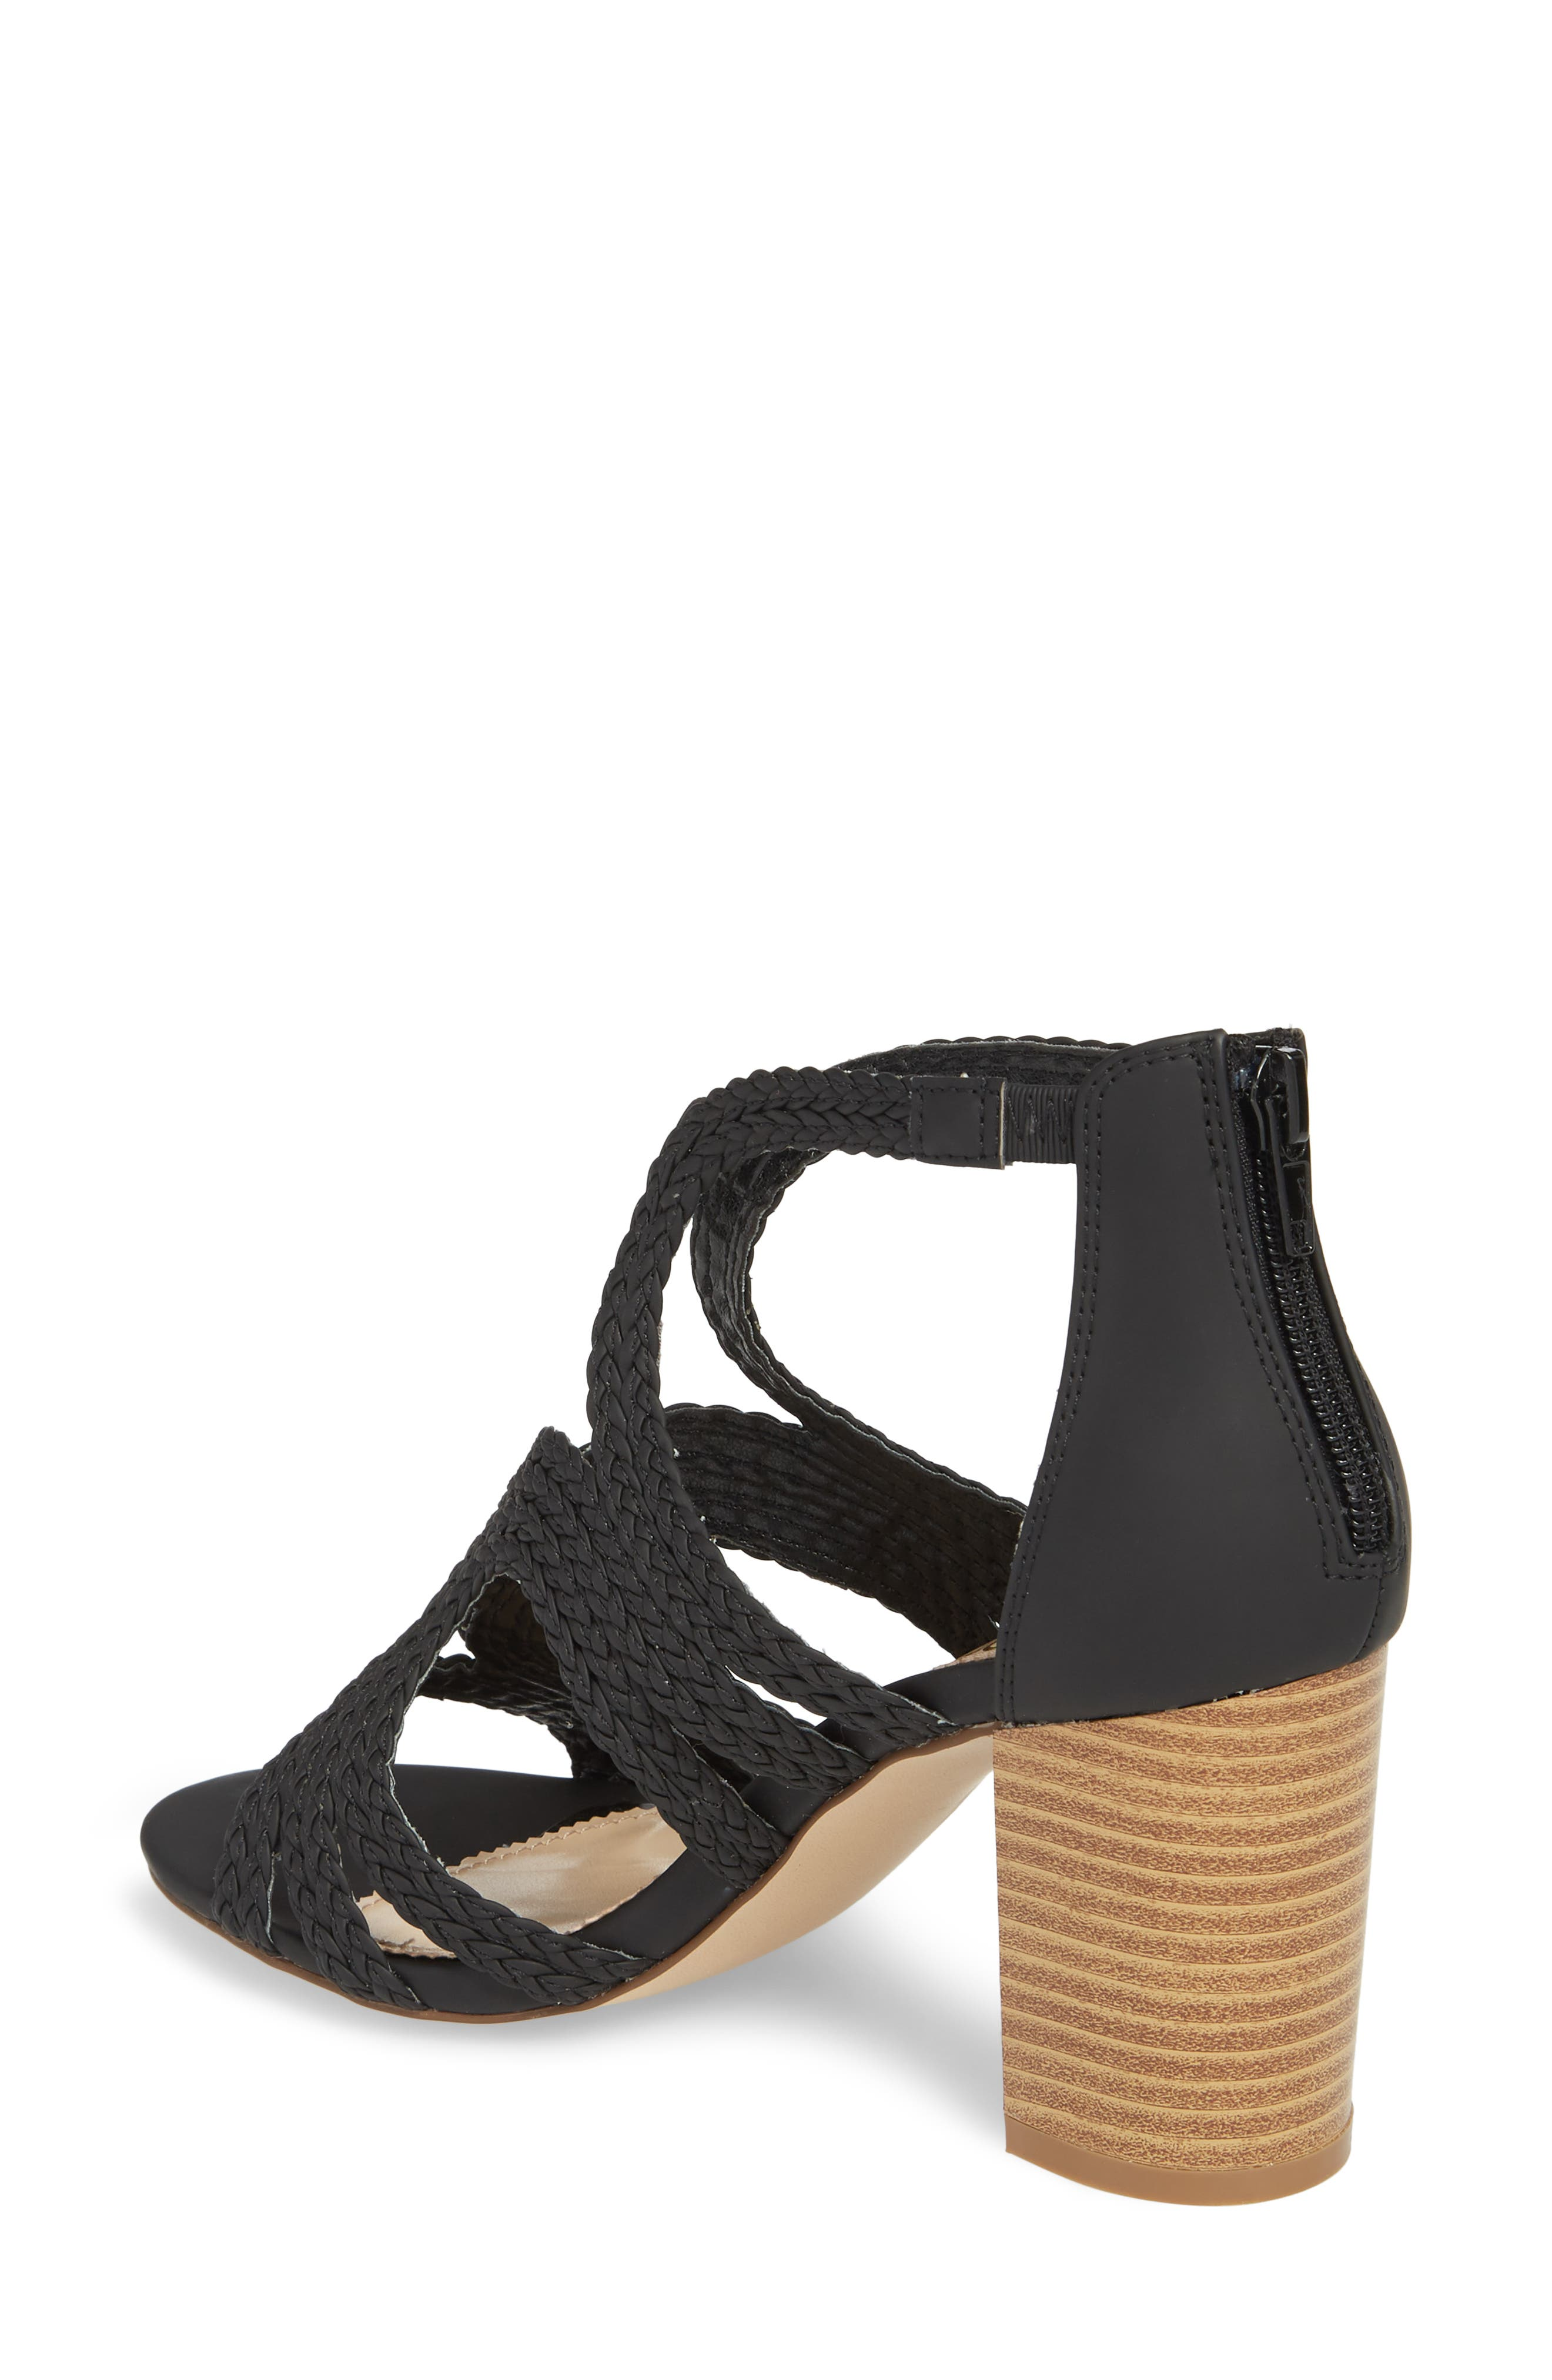 Shindig Block Heel Sandal,                             Alternate thumbnail 2, color,                             Black Fabric